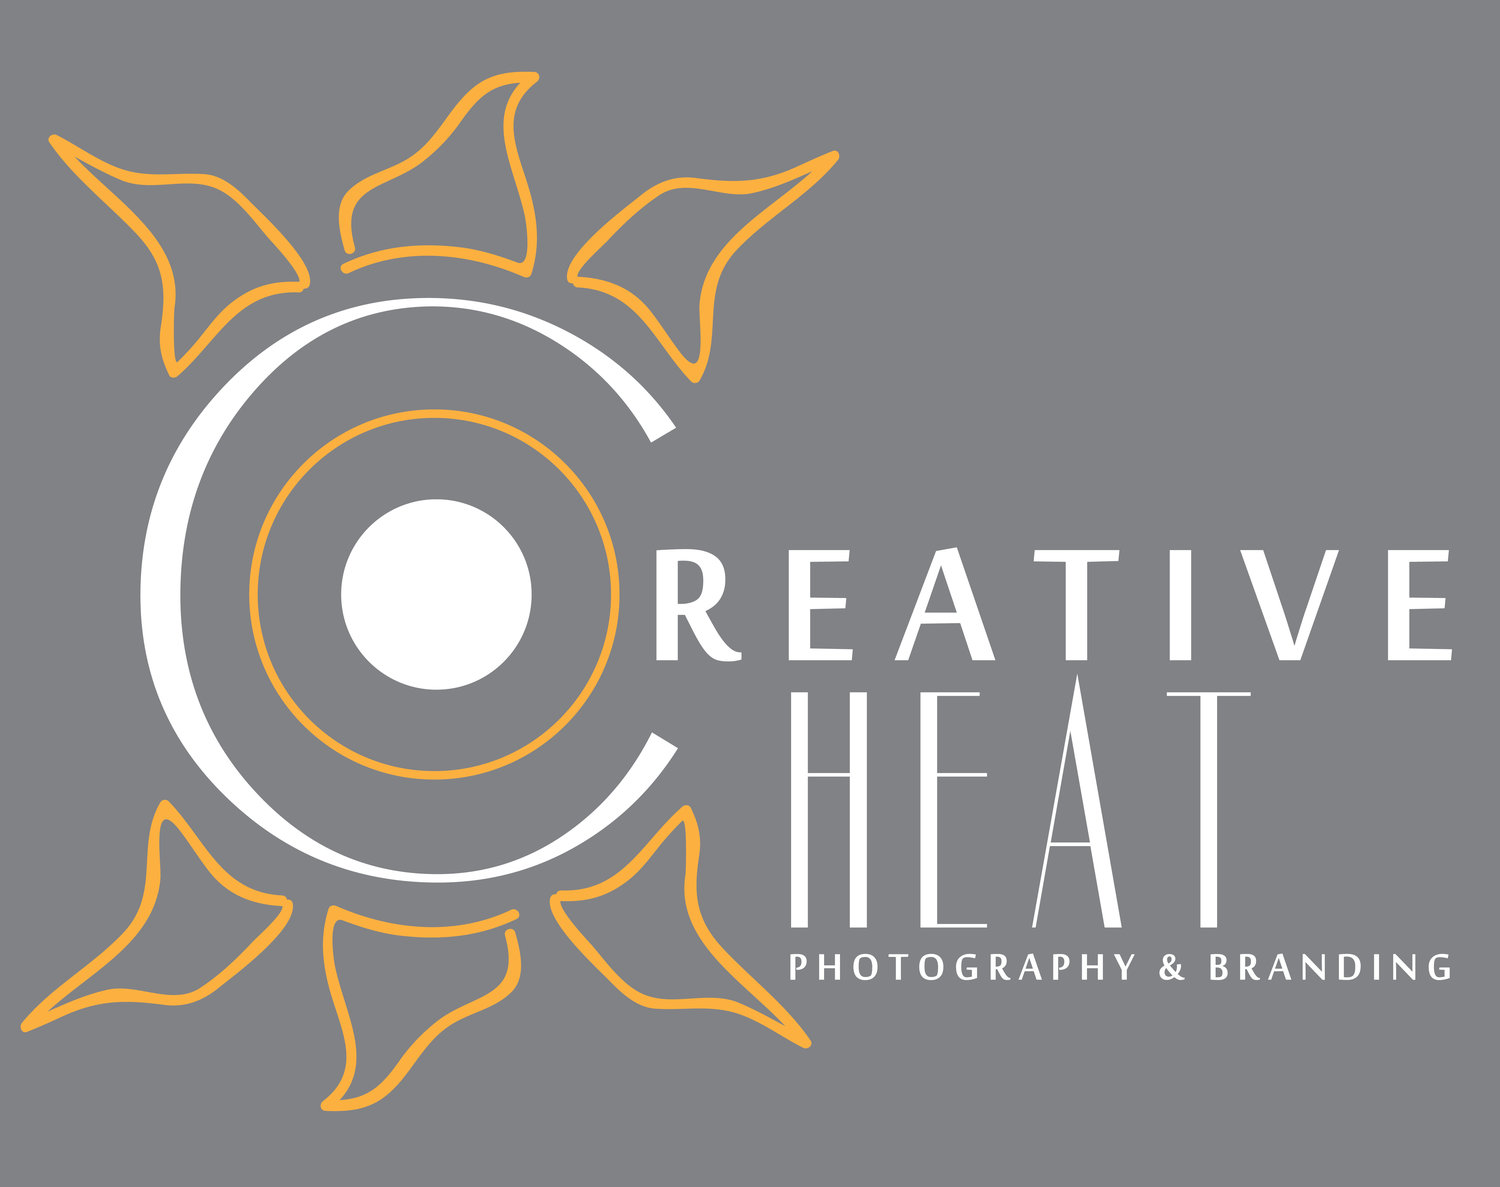 Creative Heat Photography